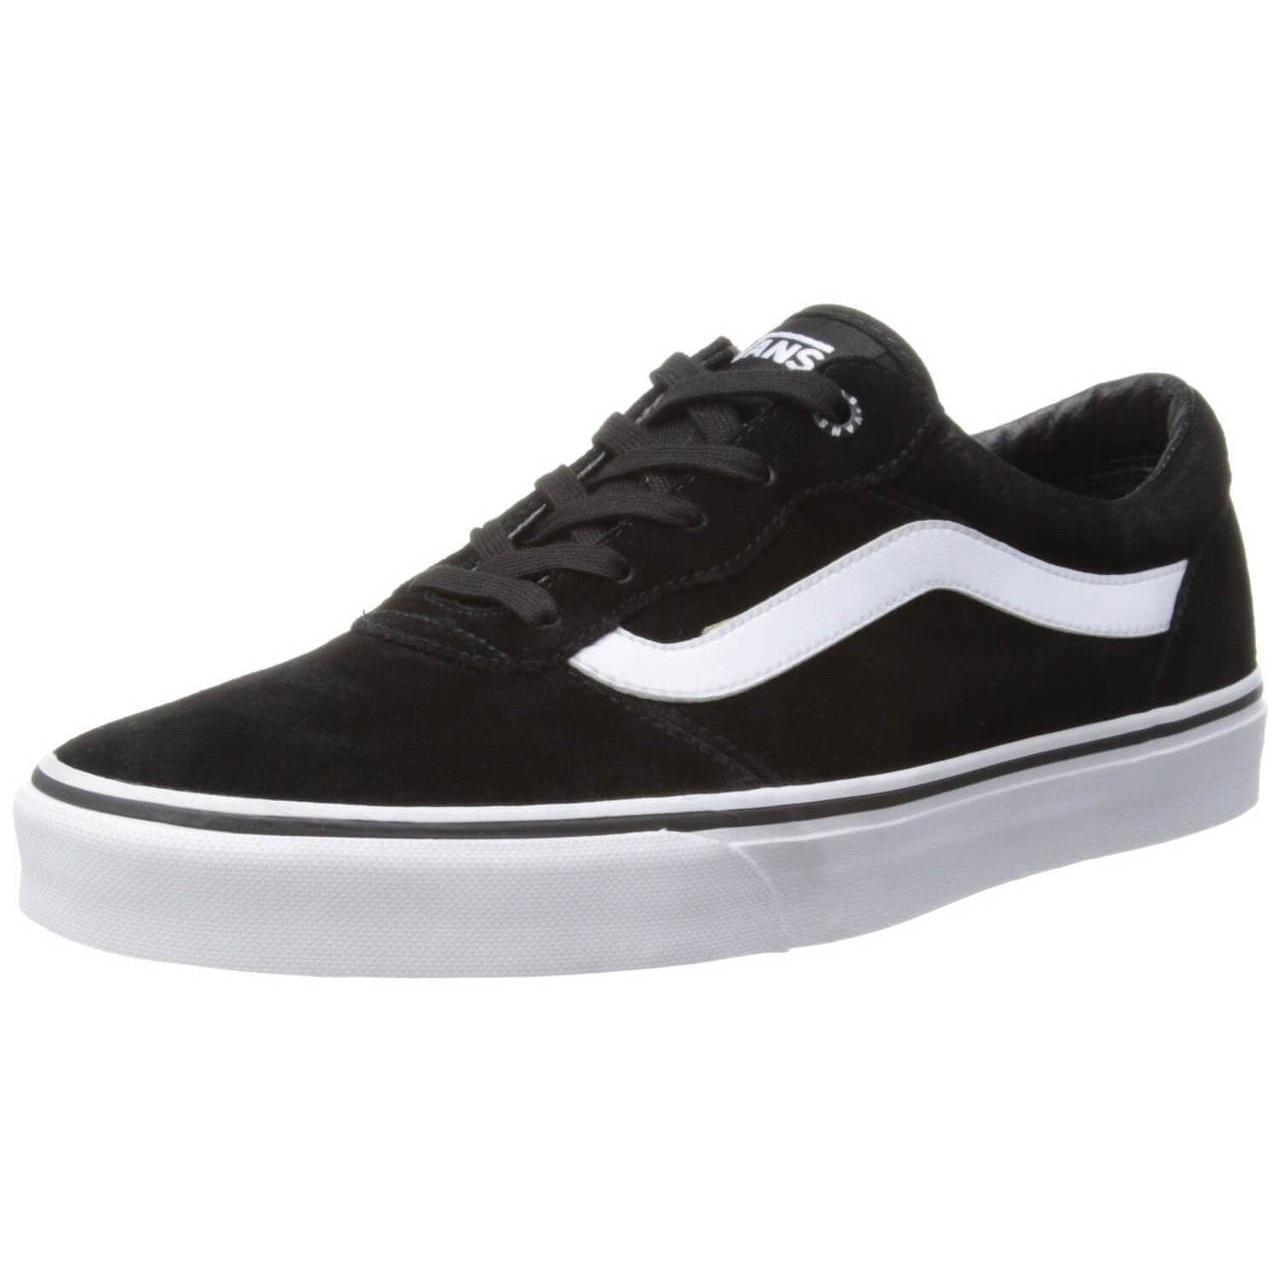 4f6ef1c359 Vans Milton Suede Trainers Black White Image. Double tap to zoom